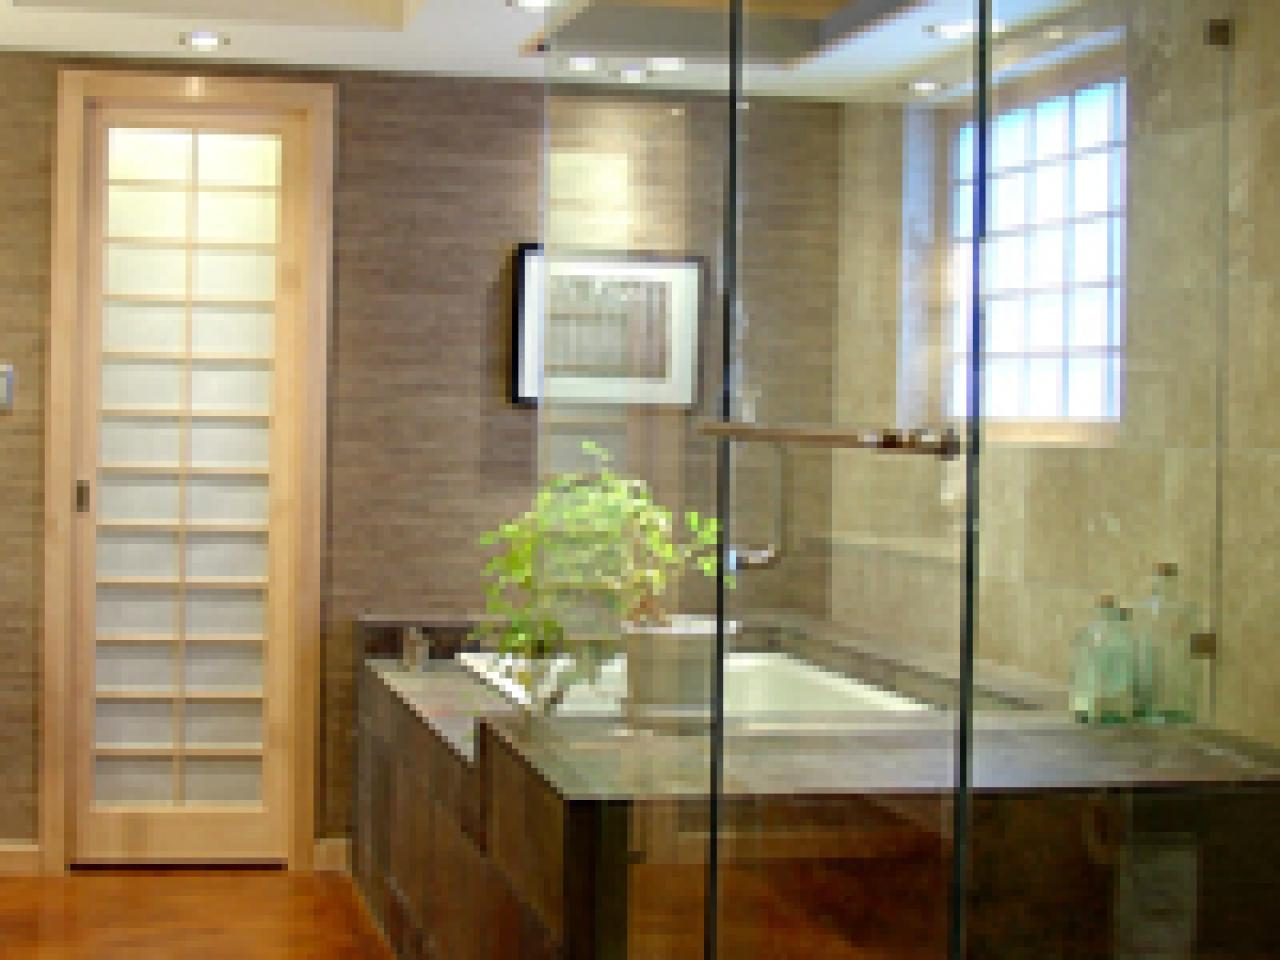 Bathroom Light Design Decor Layer The Lighting Zen Bathrk 1 The Goal Is To Acheive A Balance Of